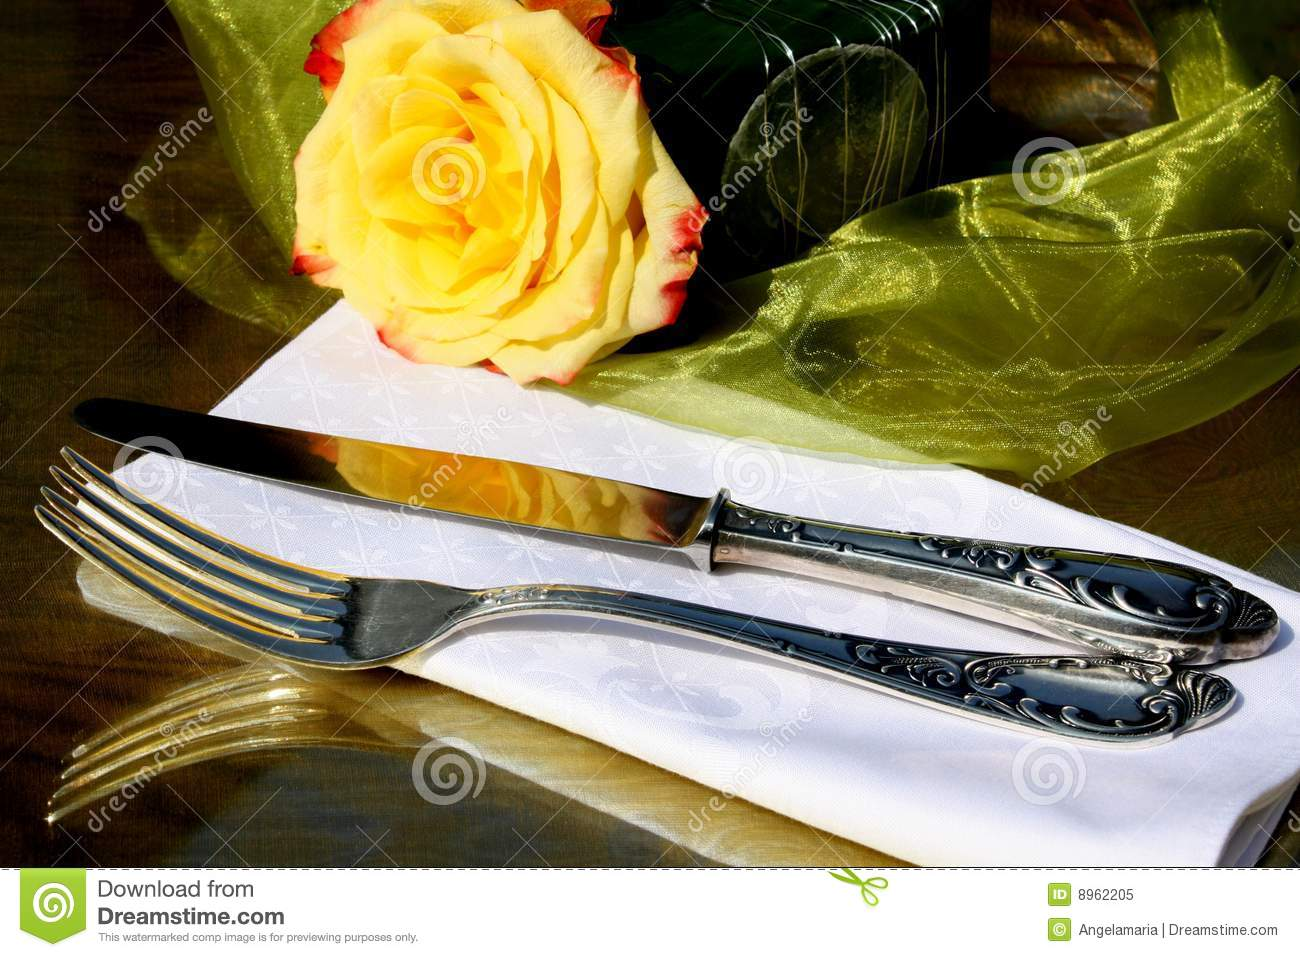 Fancy Silverware Royalty Free Stock Photo - Image: 8962205